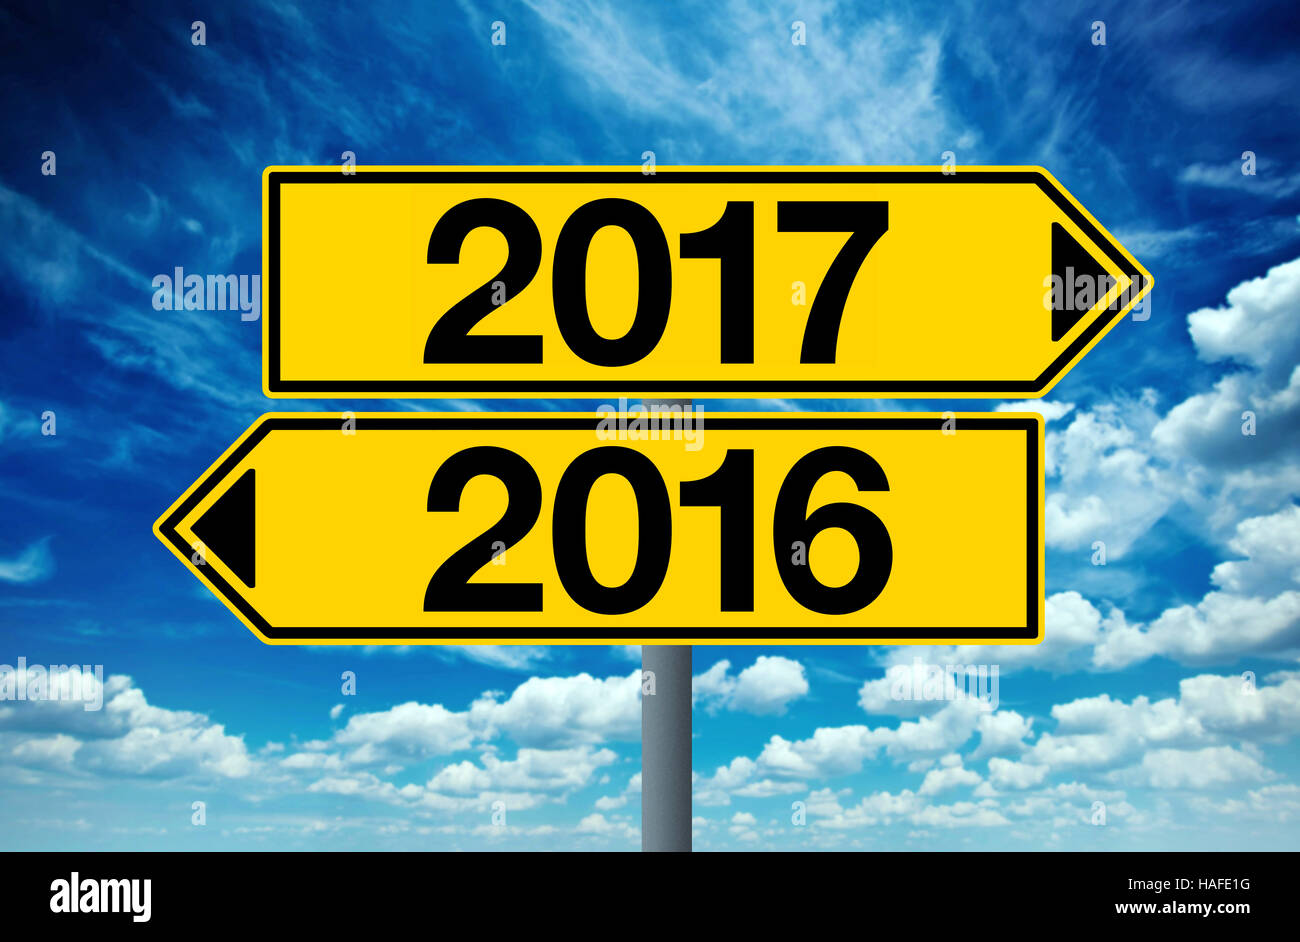 2016 and 2017 crossroad sign, happy new year - Stock Image